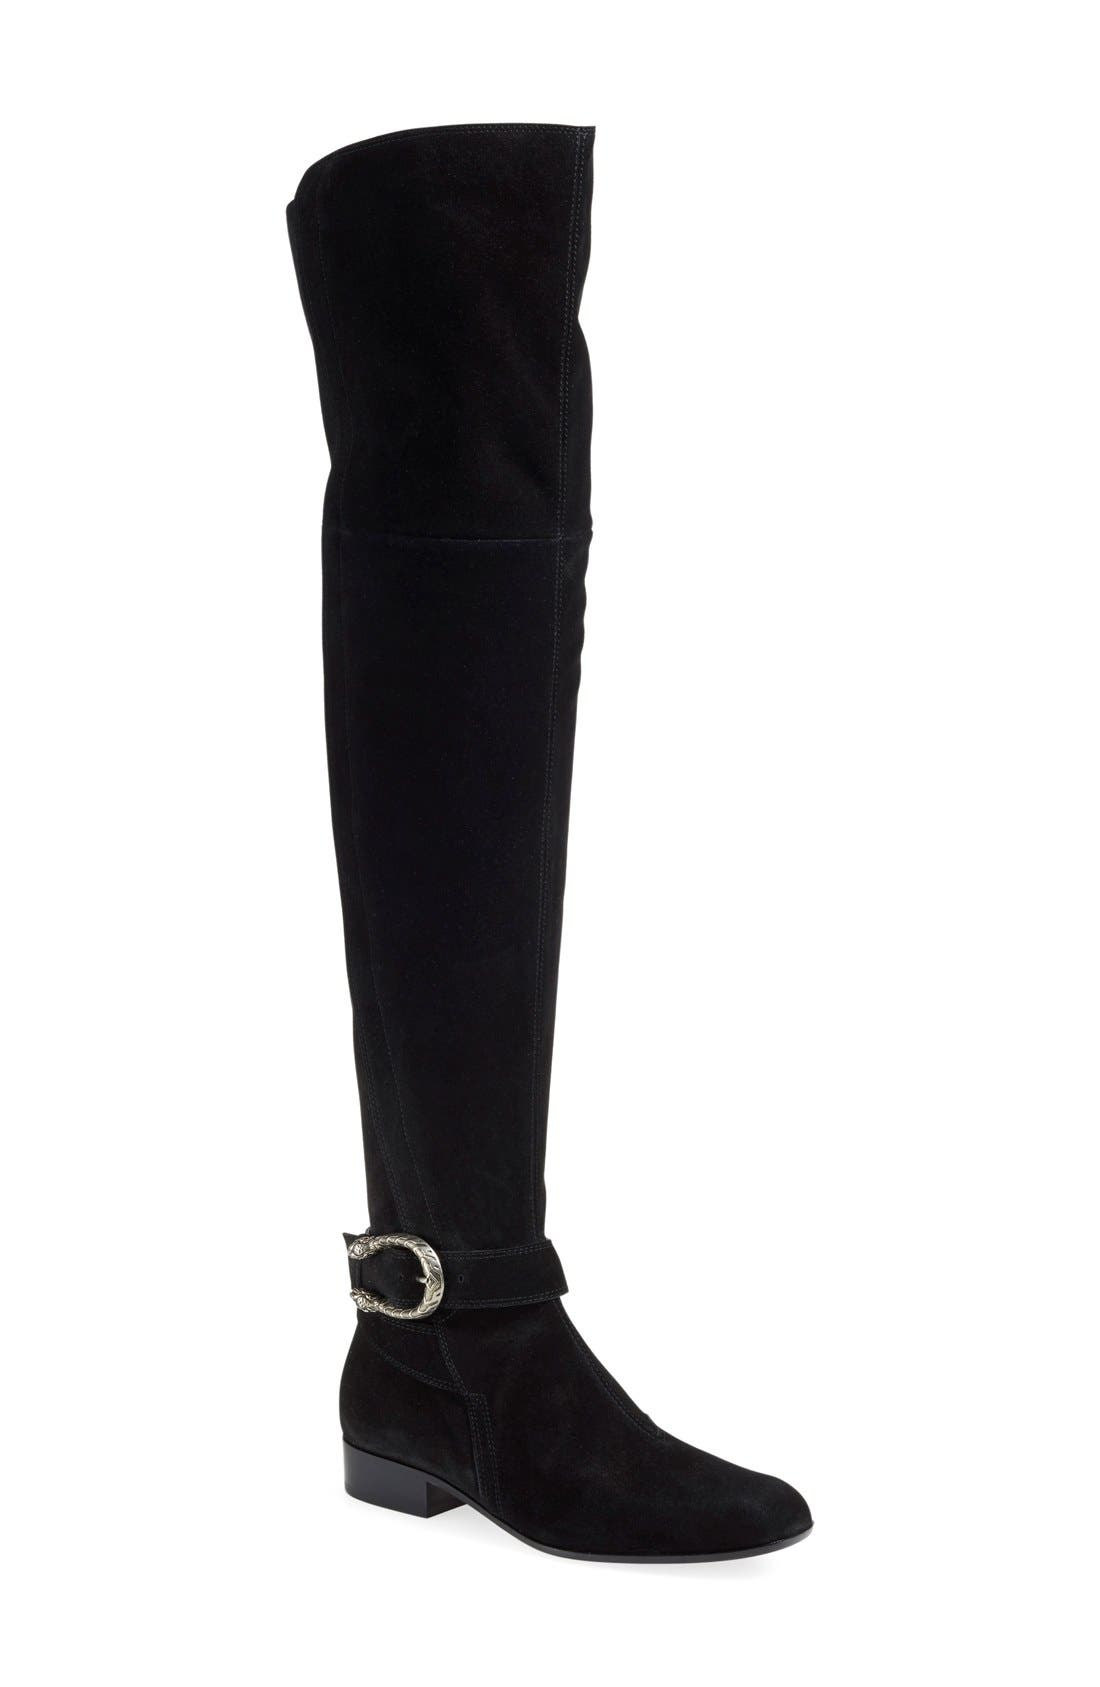 'Dionysus' Over the Knee Boot,                             Main thumbnail 1, color,                             001